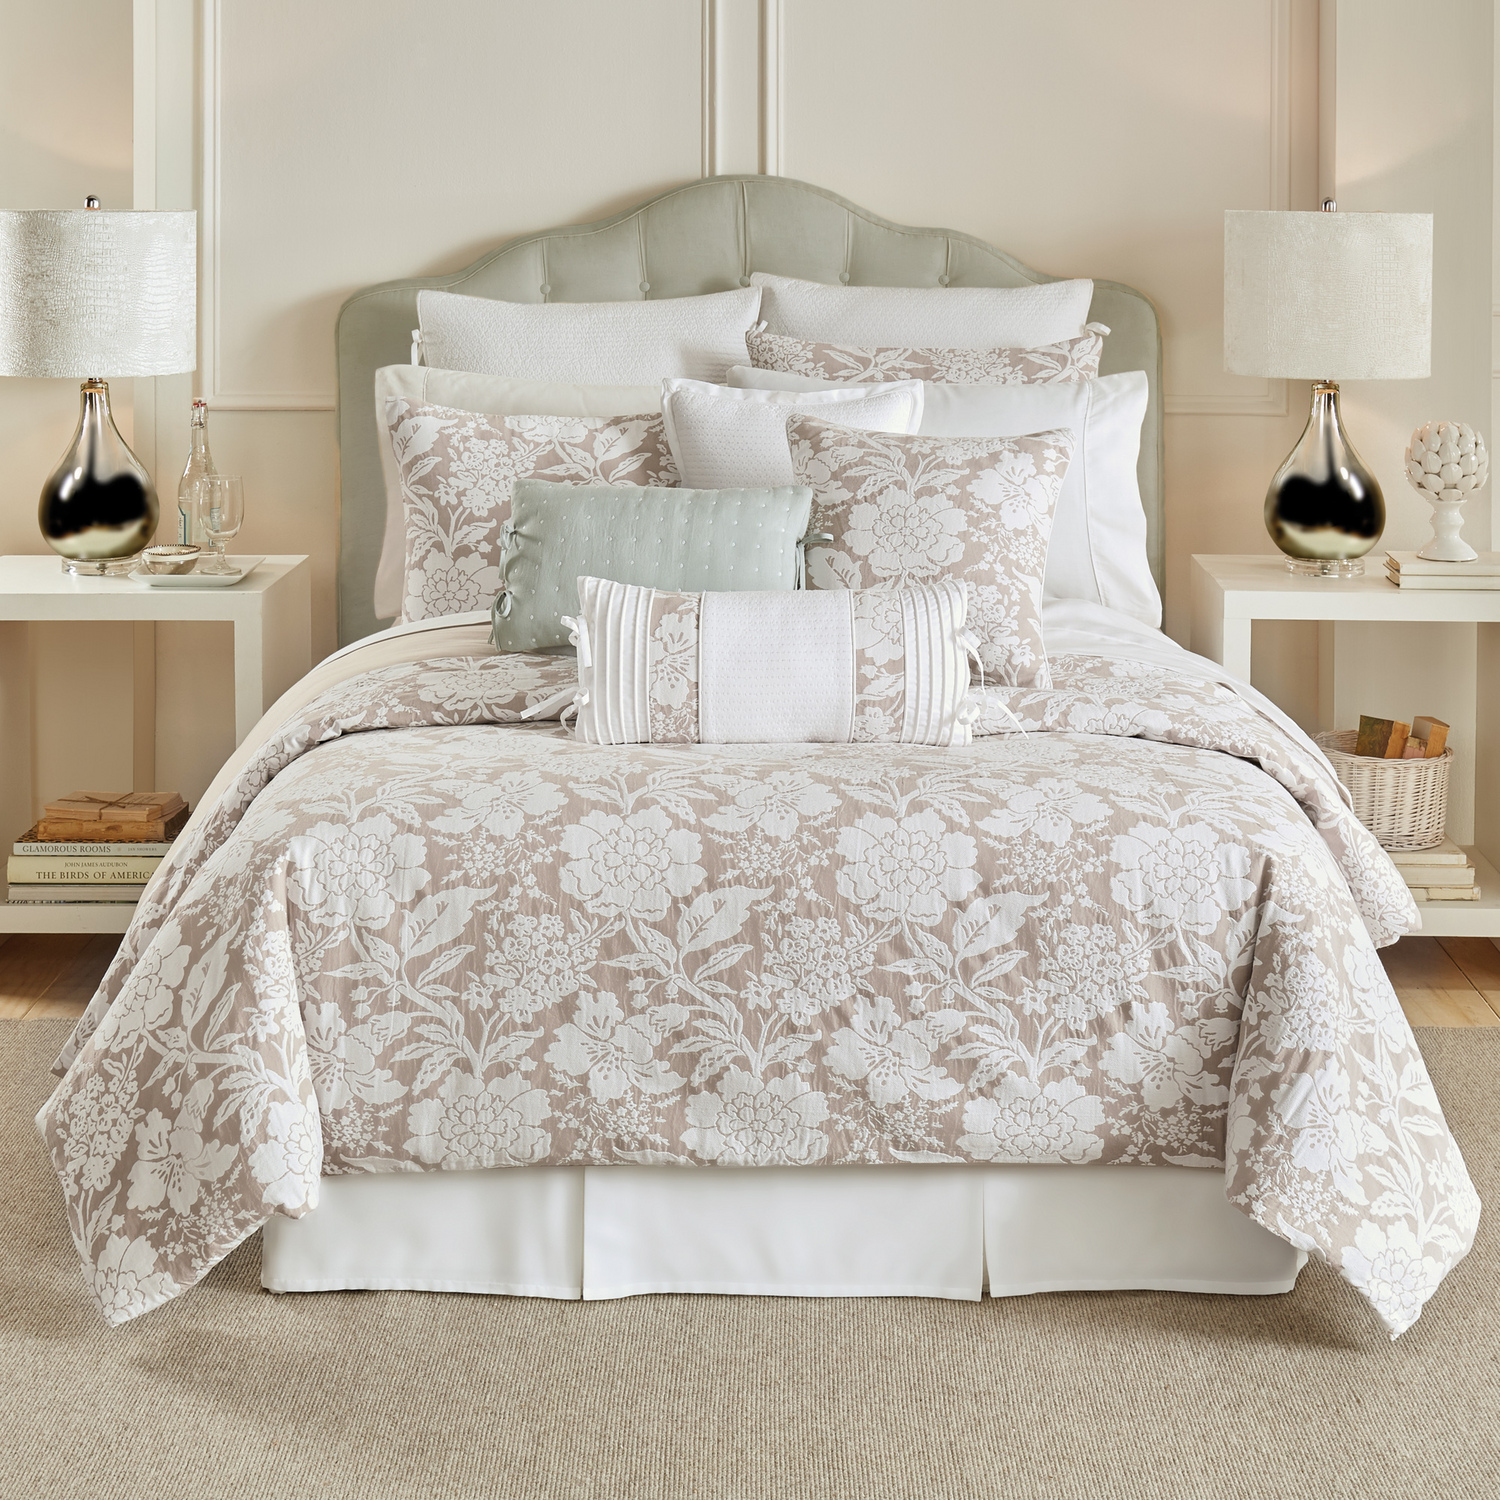 Nellie by Croscill Home Fashions